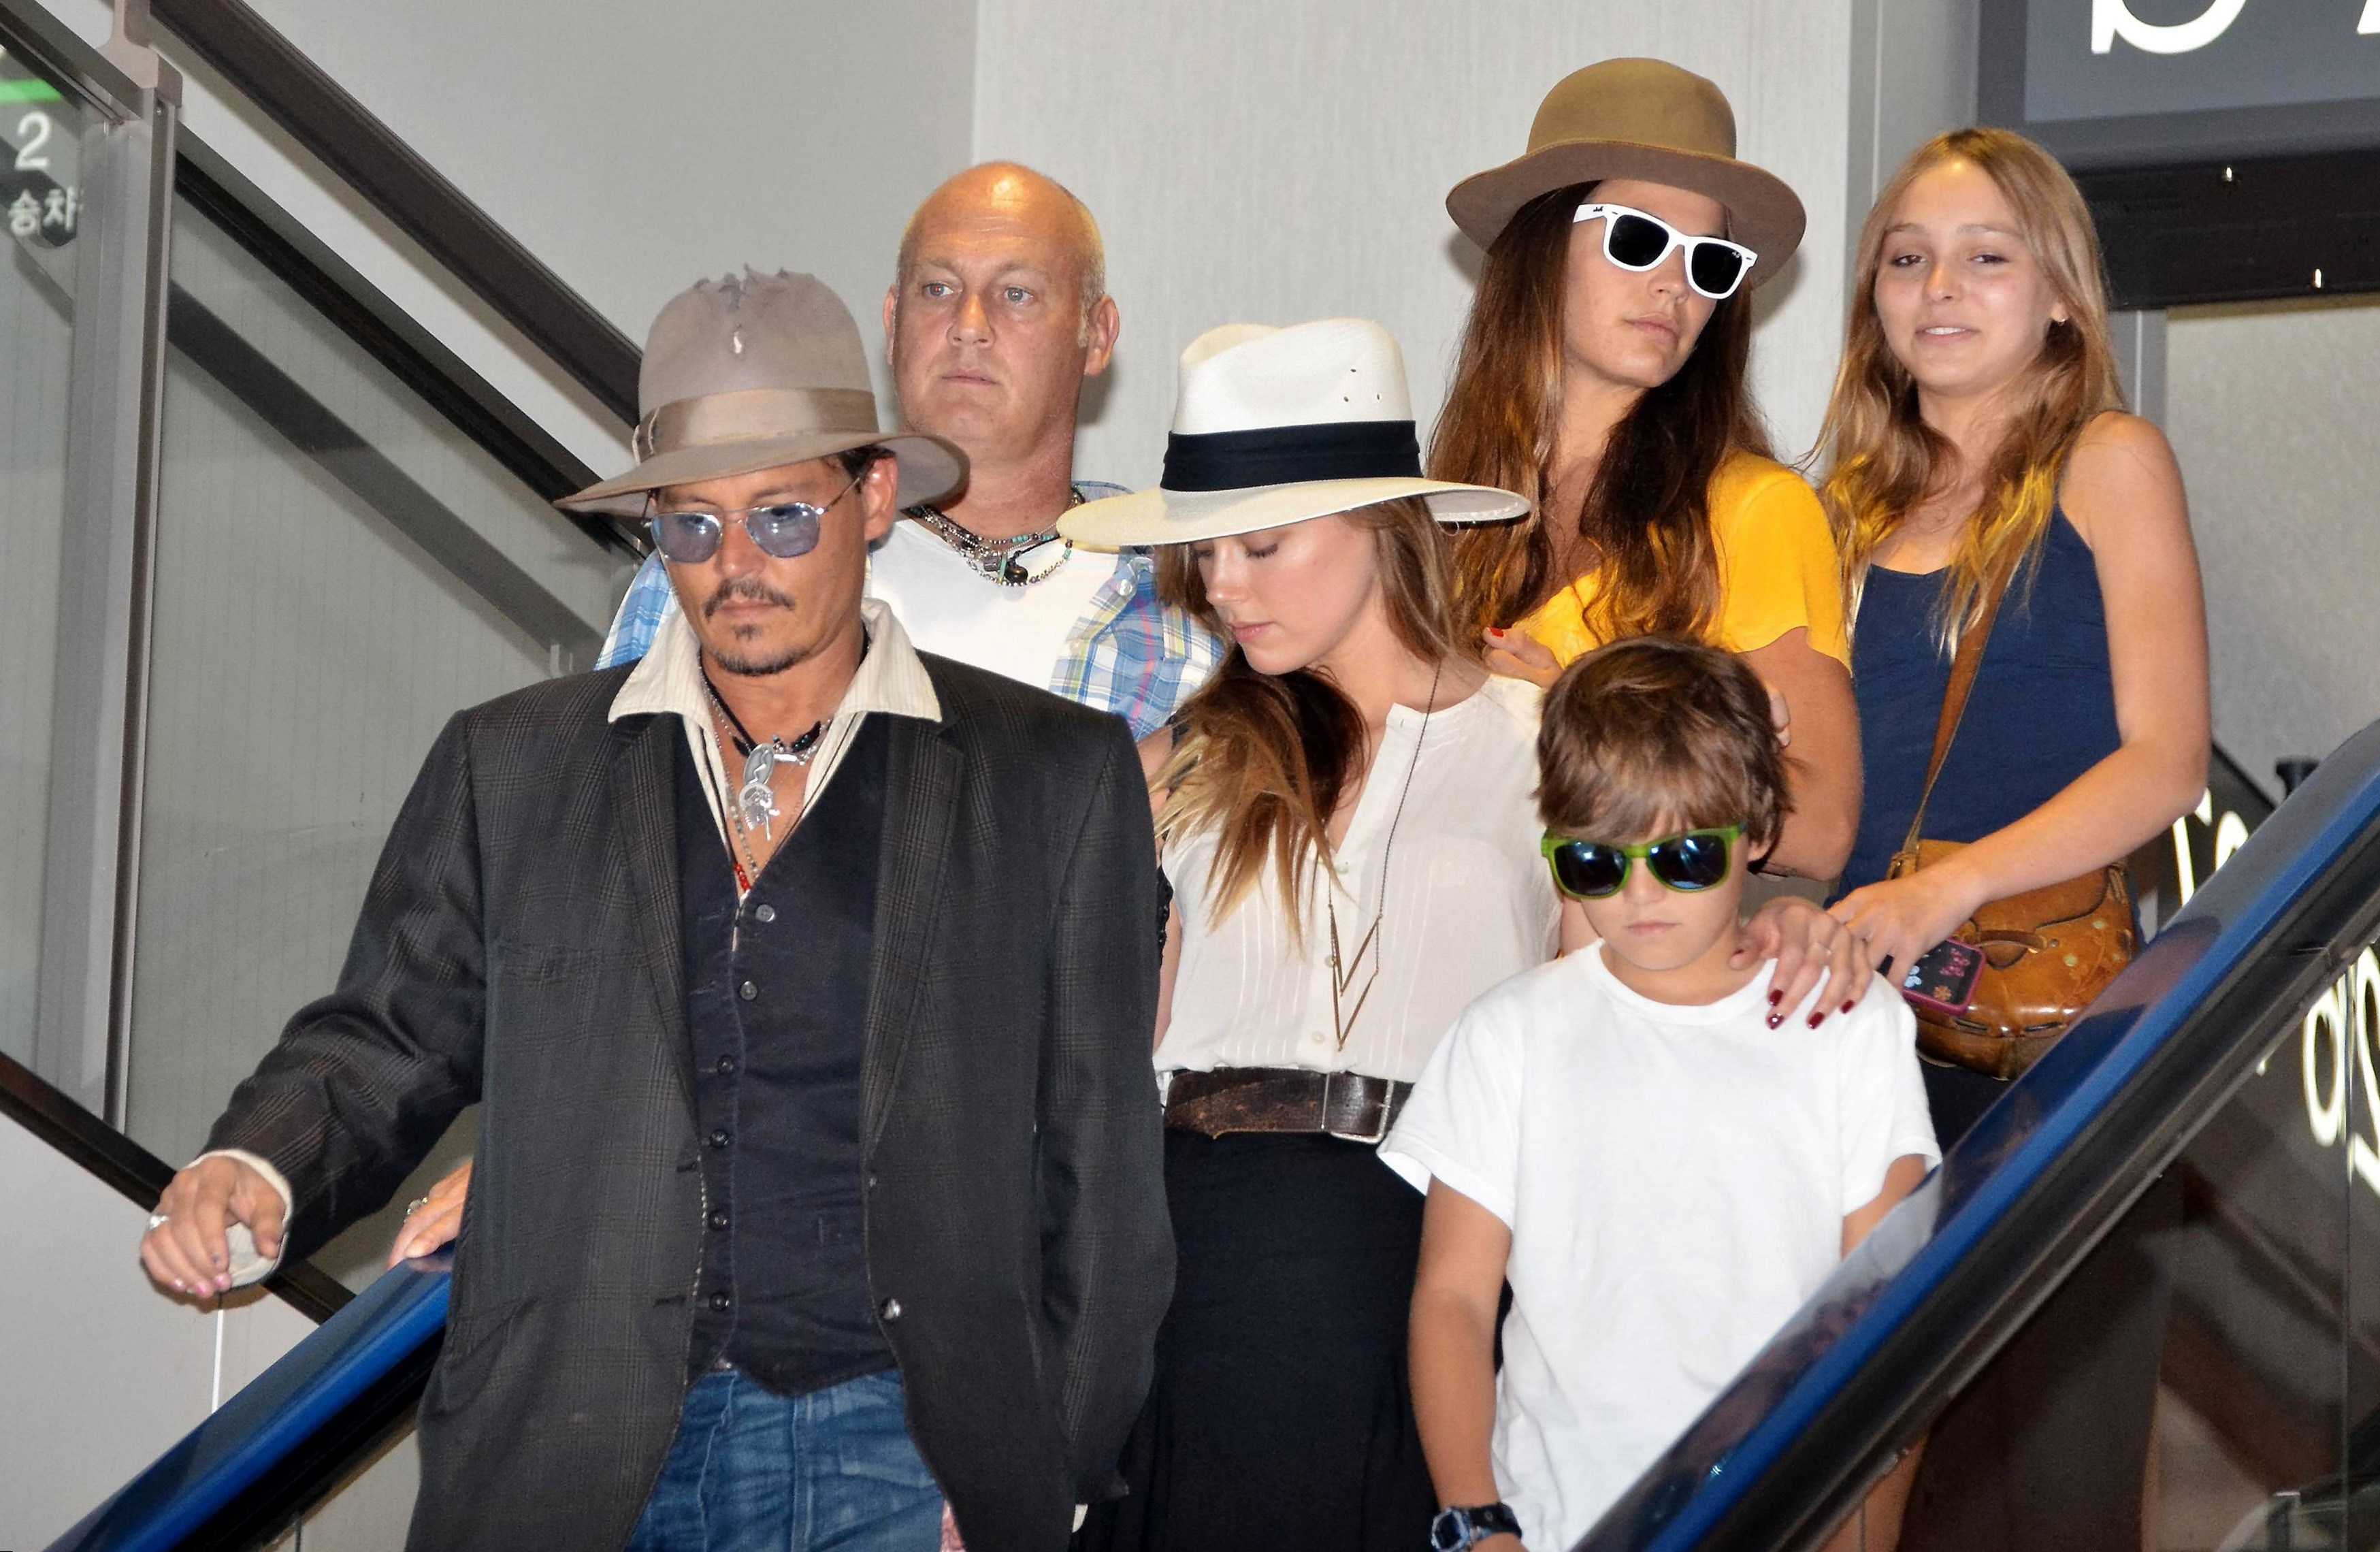 Johny Depp family: siblings, parents, children, wife